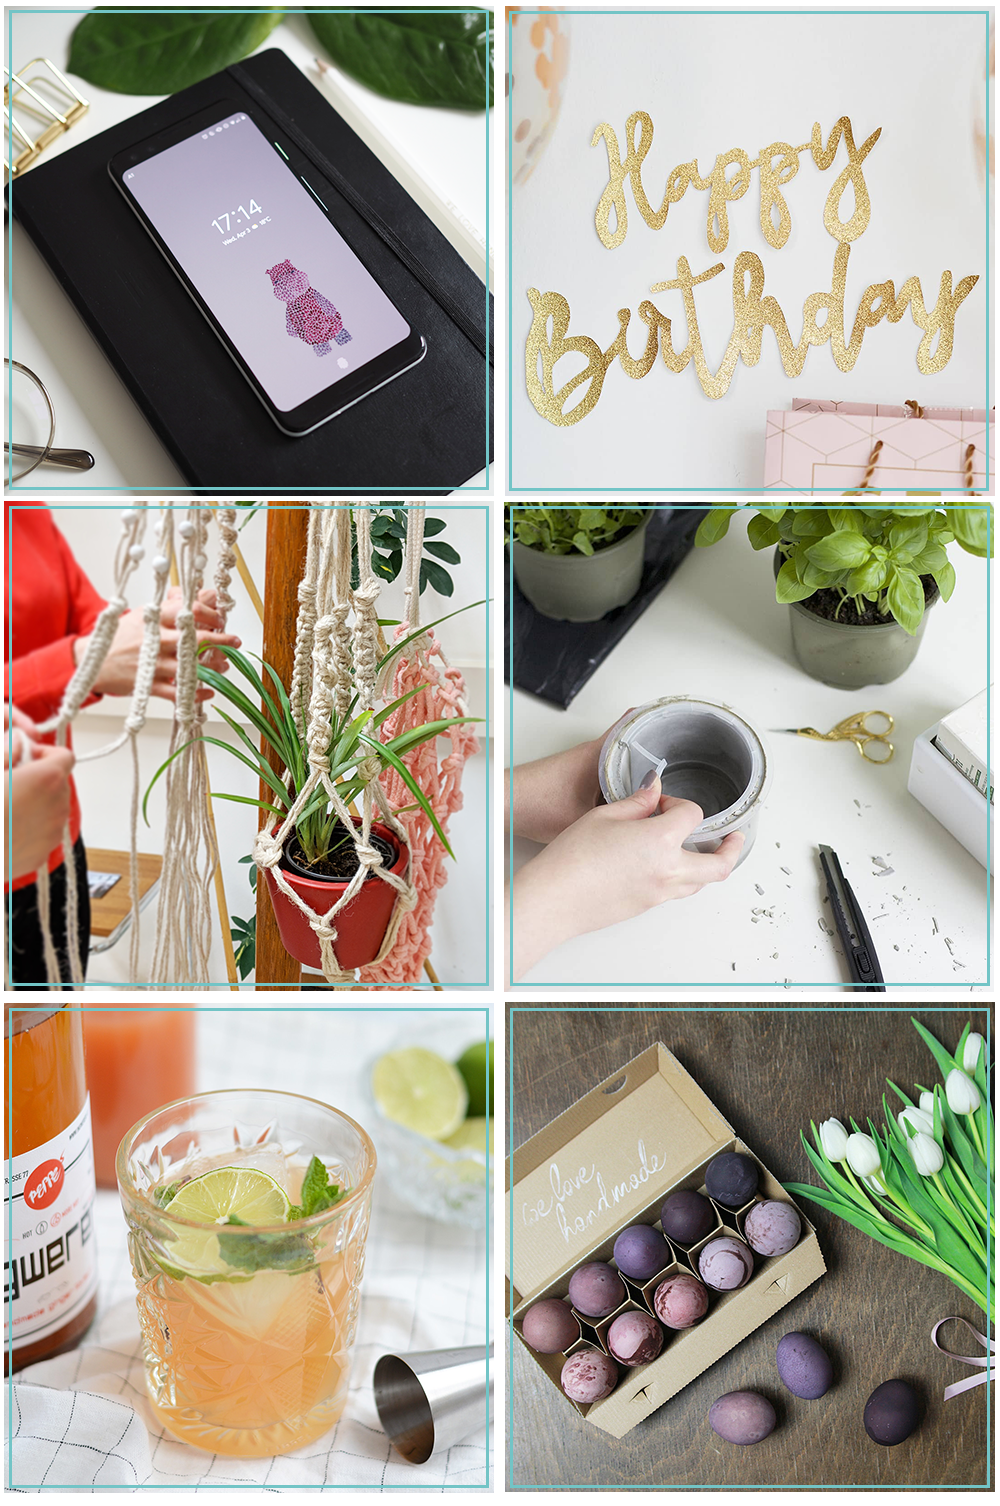 Monatsrückblick: April 2019 | we love handmade